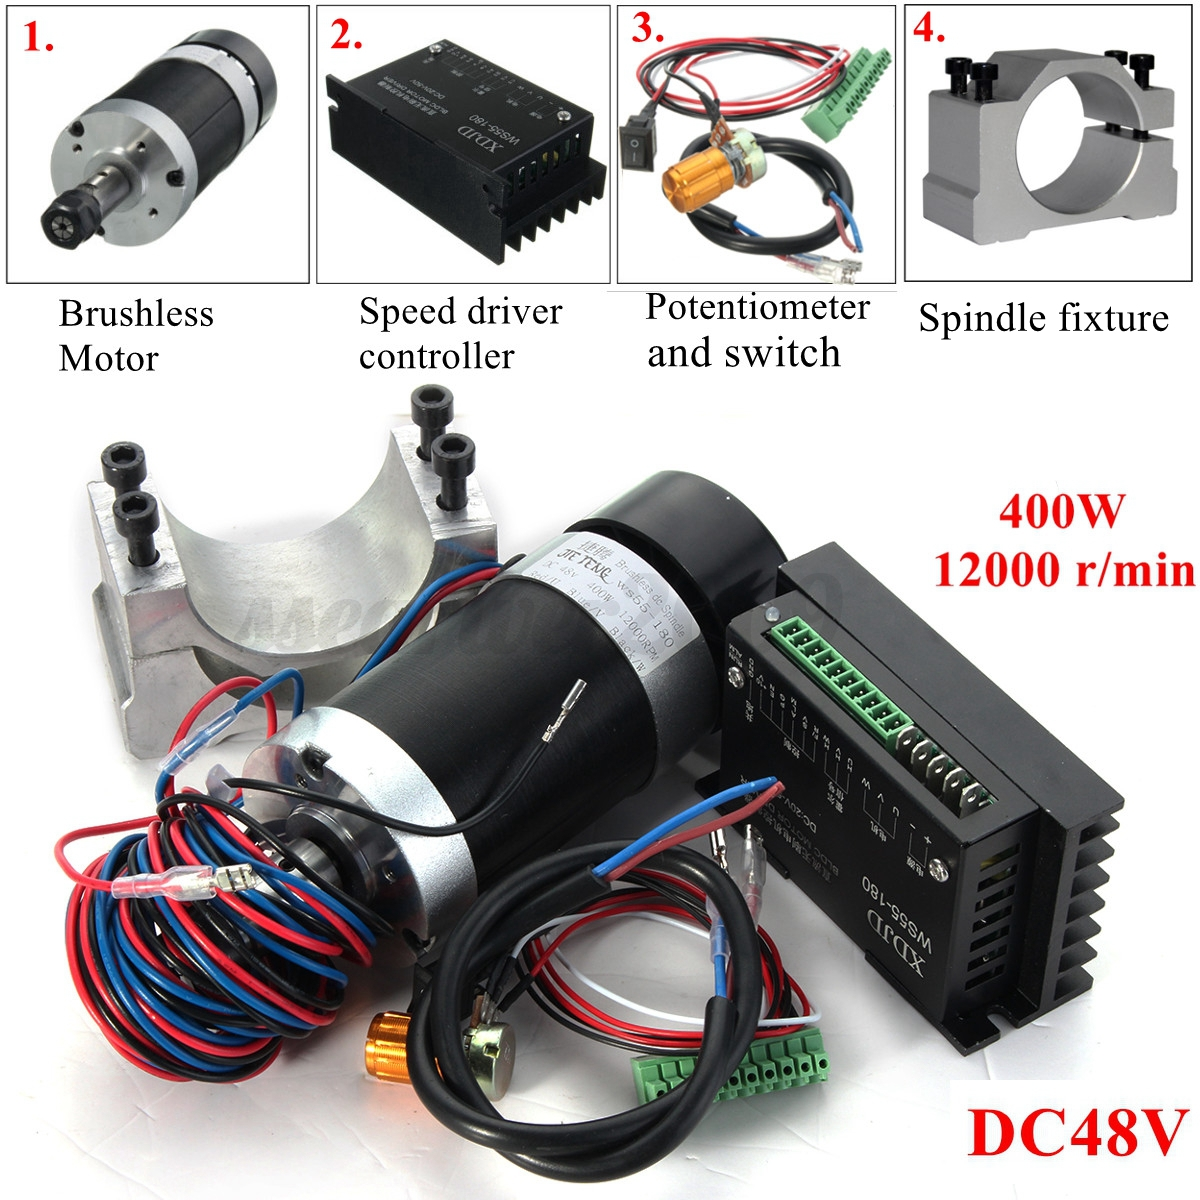 Digital Stepper Driver Kl 8070d Heat Sink Is Included additionally Nema34 31 Pla ary Gearbox furthermore 4025 Dc T Sealing Air besides Products in addition Brushless Rc Motors. on brushless dc motor spindles